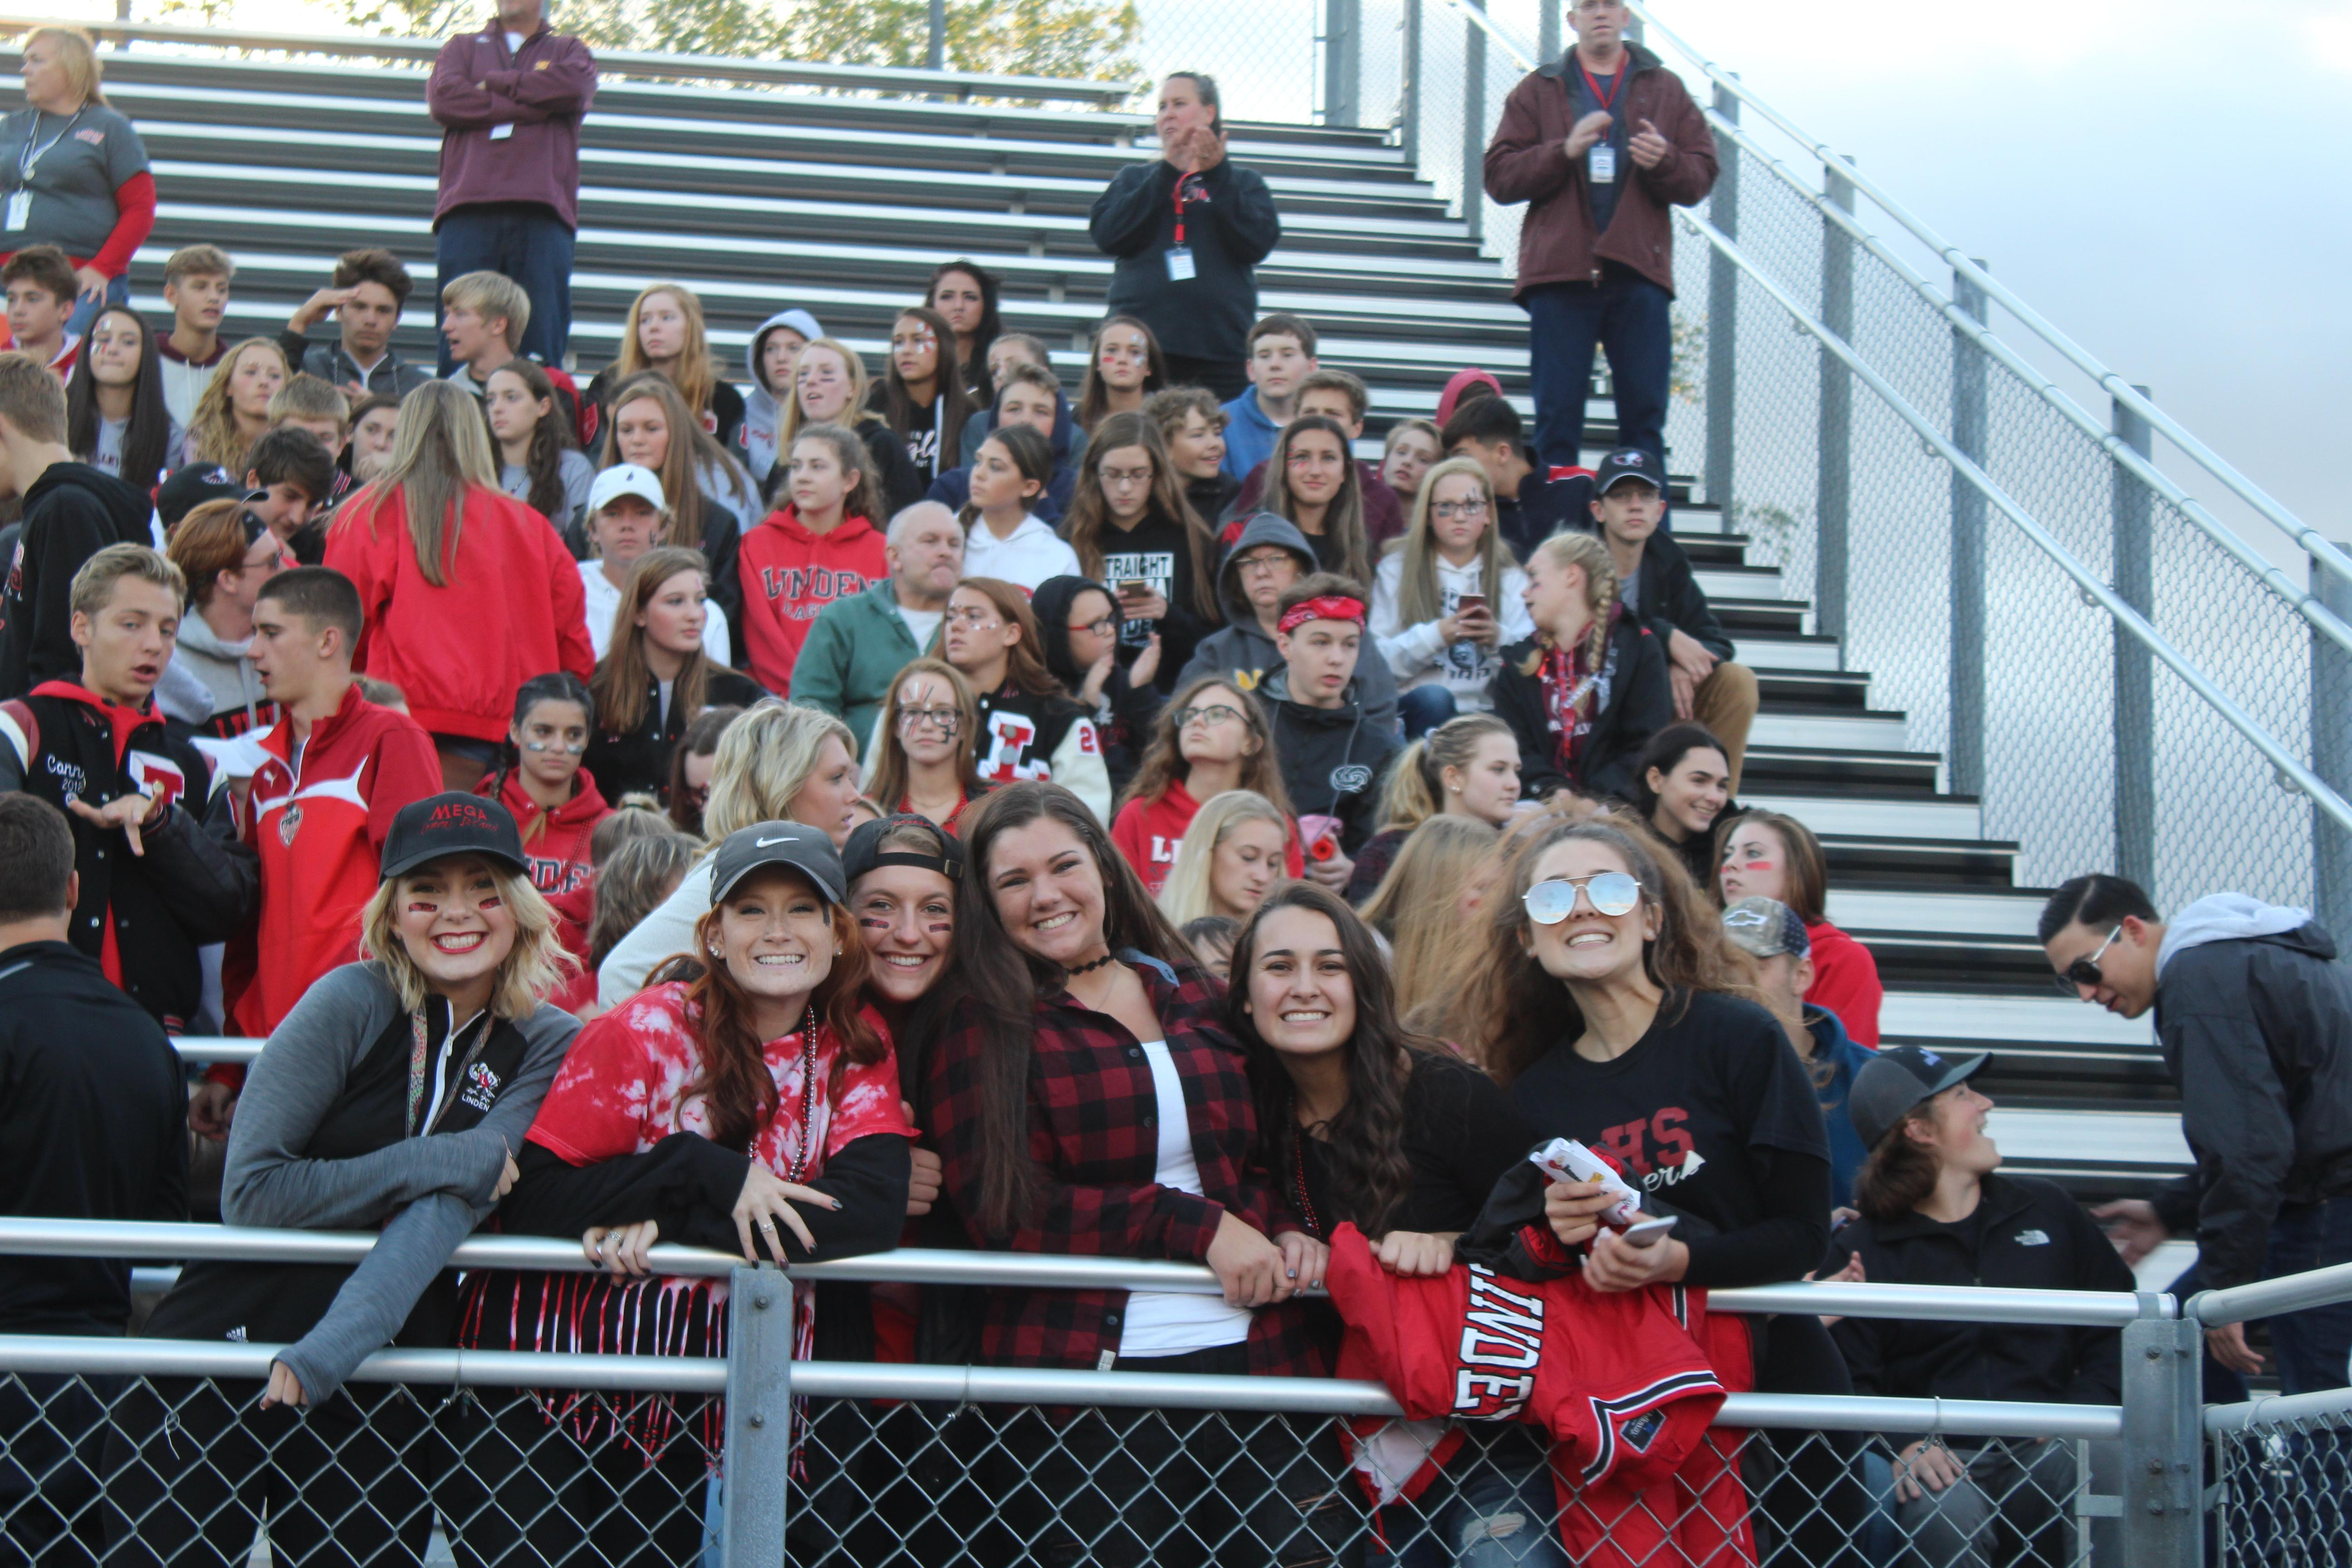 Student section in bleachers at a football game